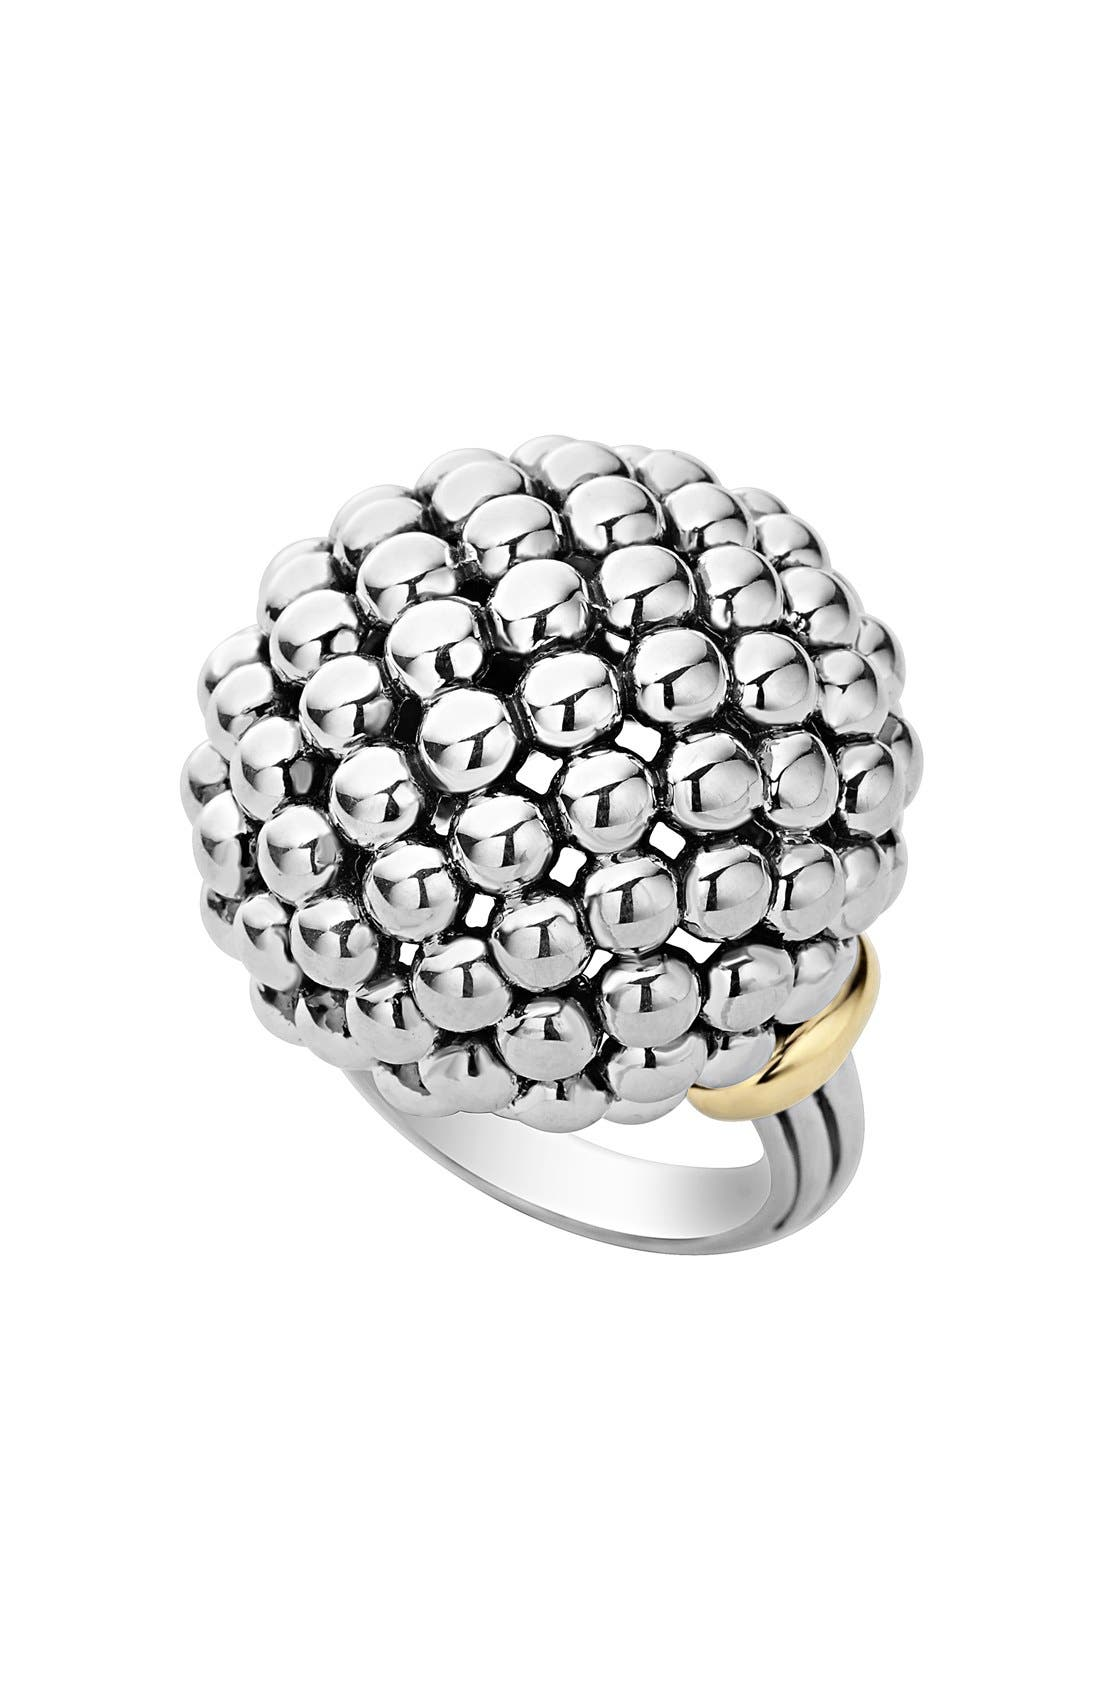 Main Image - LAGOS 'Caviar Forever' Large Dome Ring